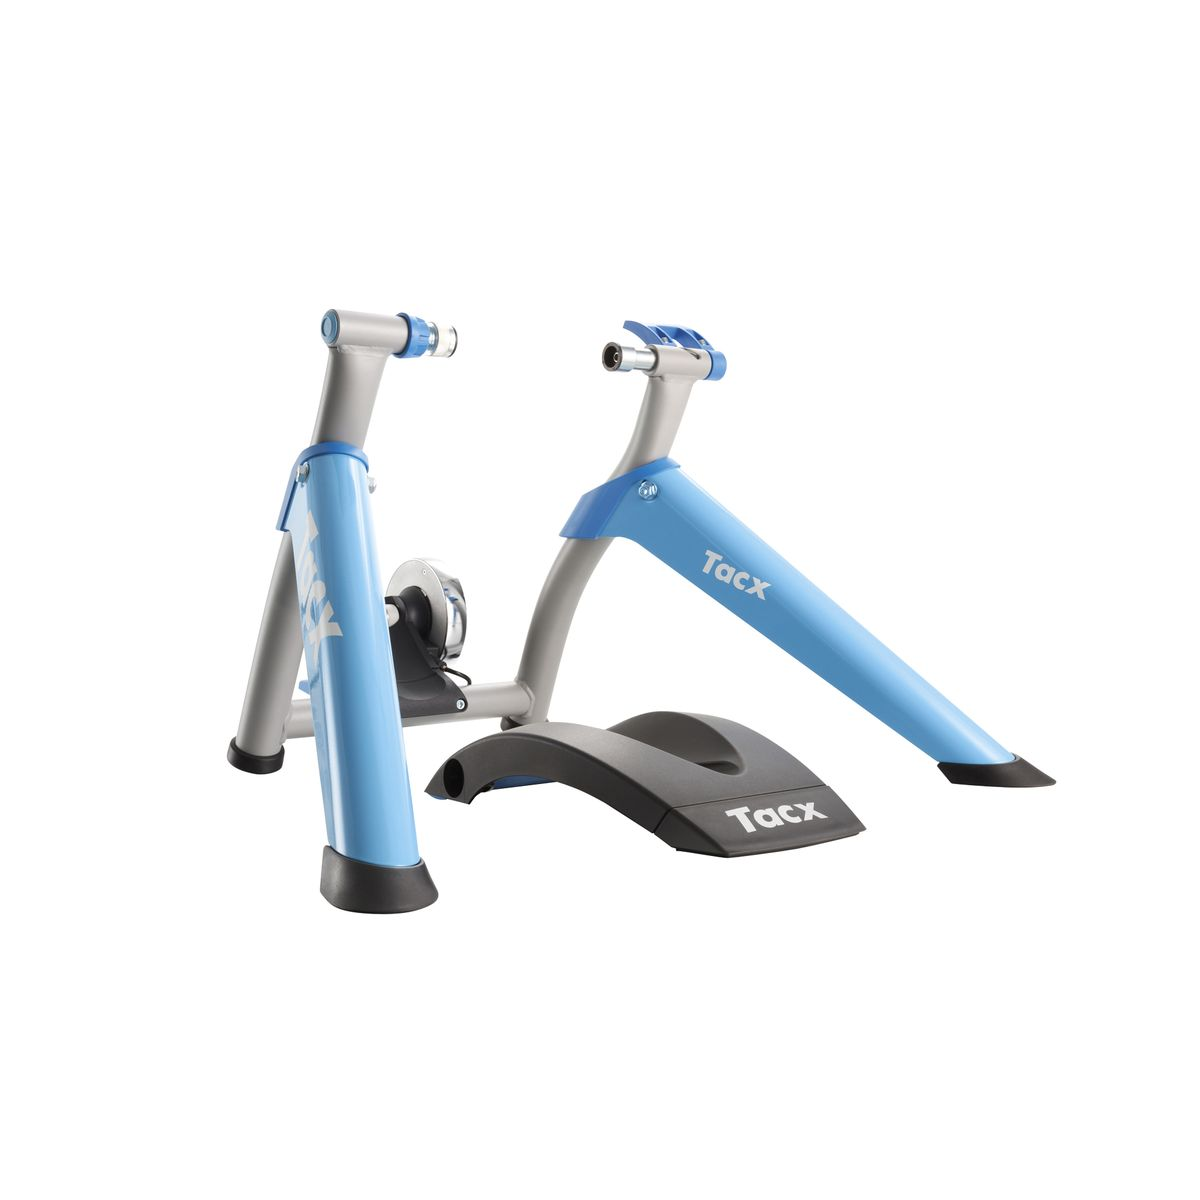 Tacx Satori Smart T2400 turbo trainer | Hometrainer